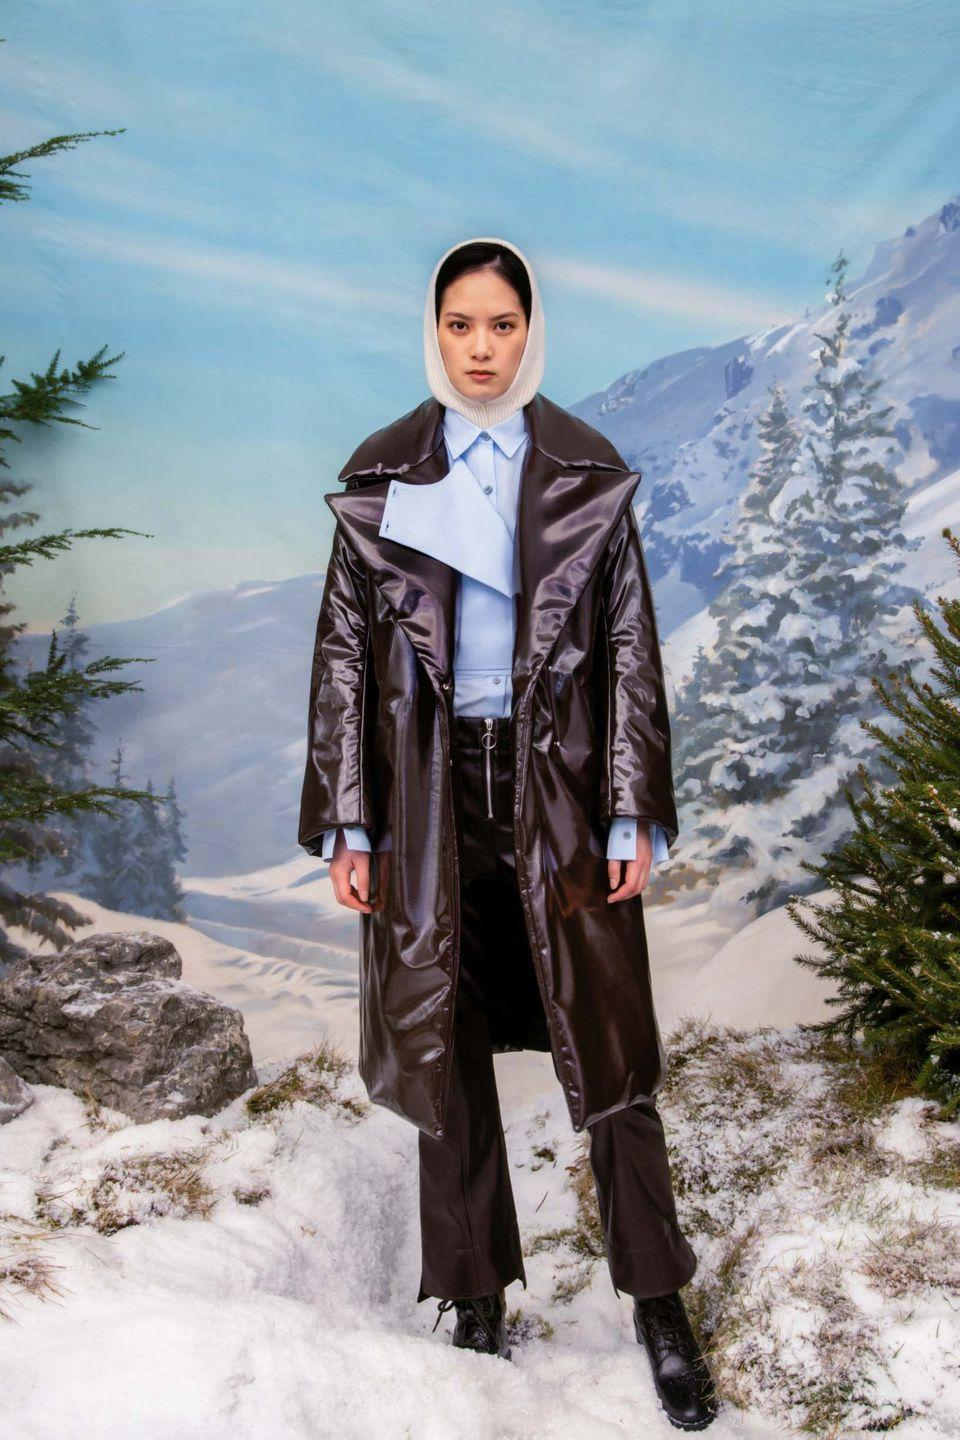 <p>For his AW21 collection, designer Eudon Choi took us on an idyllic escape to the Swiss Alps, which came about as a result of his own ongoing desire for escapism, something which has become central to his creative process. The collection was all about a chic take on après ski, injecting some holiday glamour with a 1960s twist, inspired by Chalet Ariel, Elizabeth Taylor and Richard Burton's ski chalet in Gstaad, Switzerland.</p>